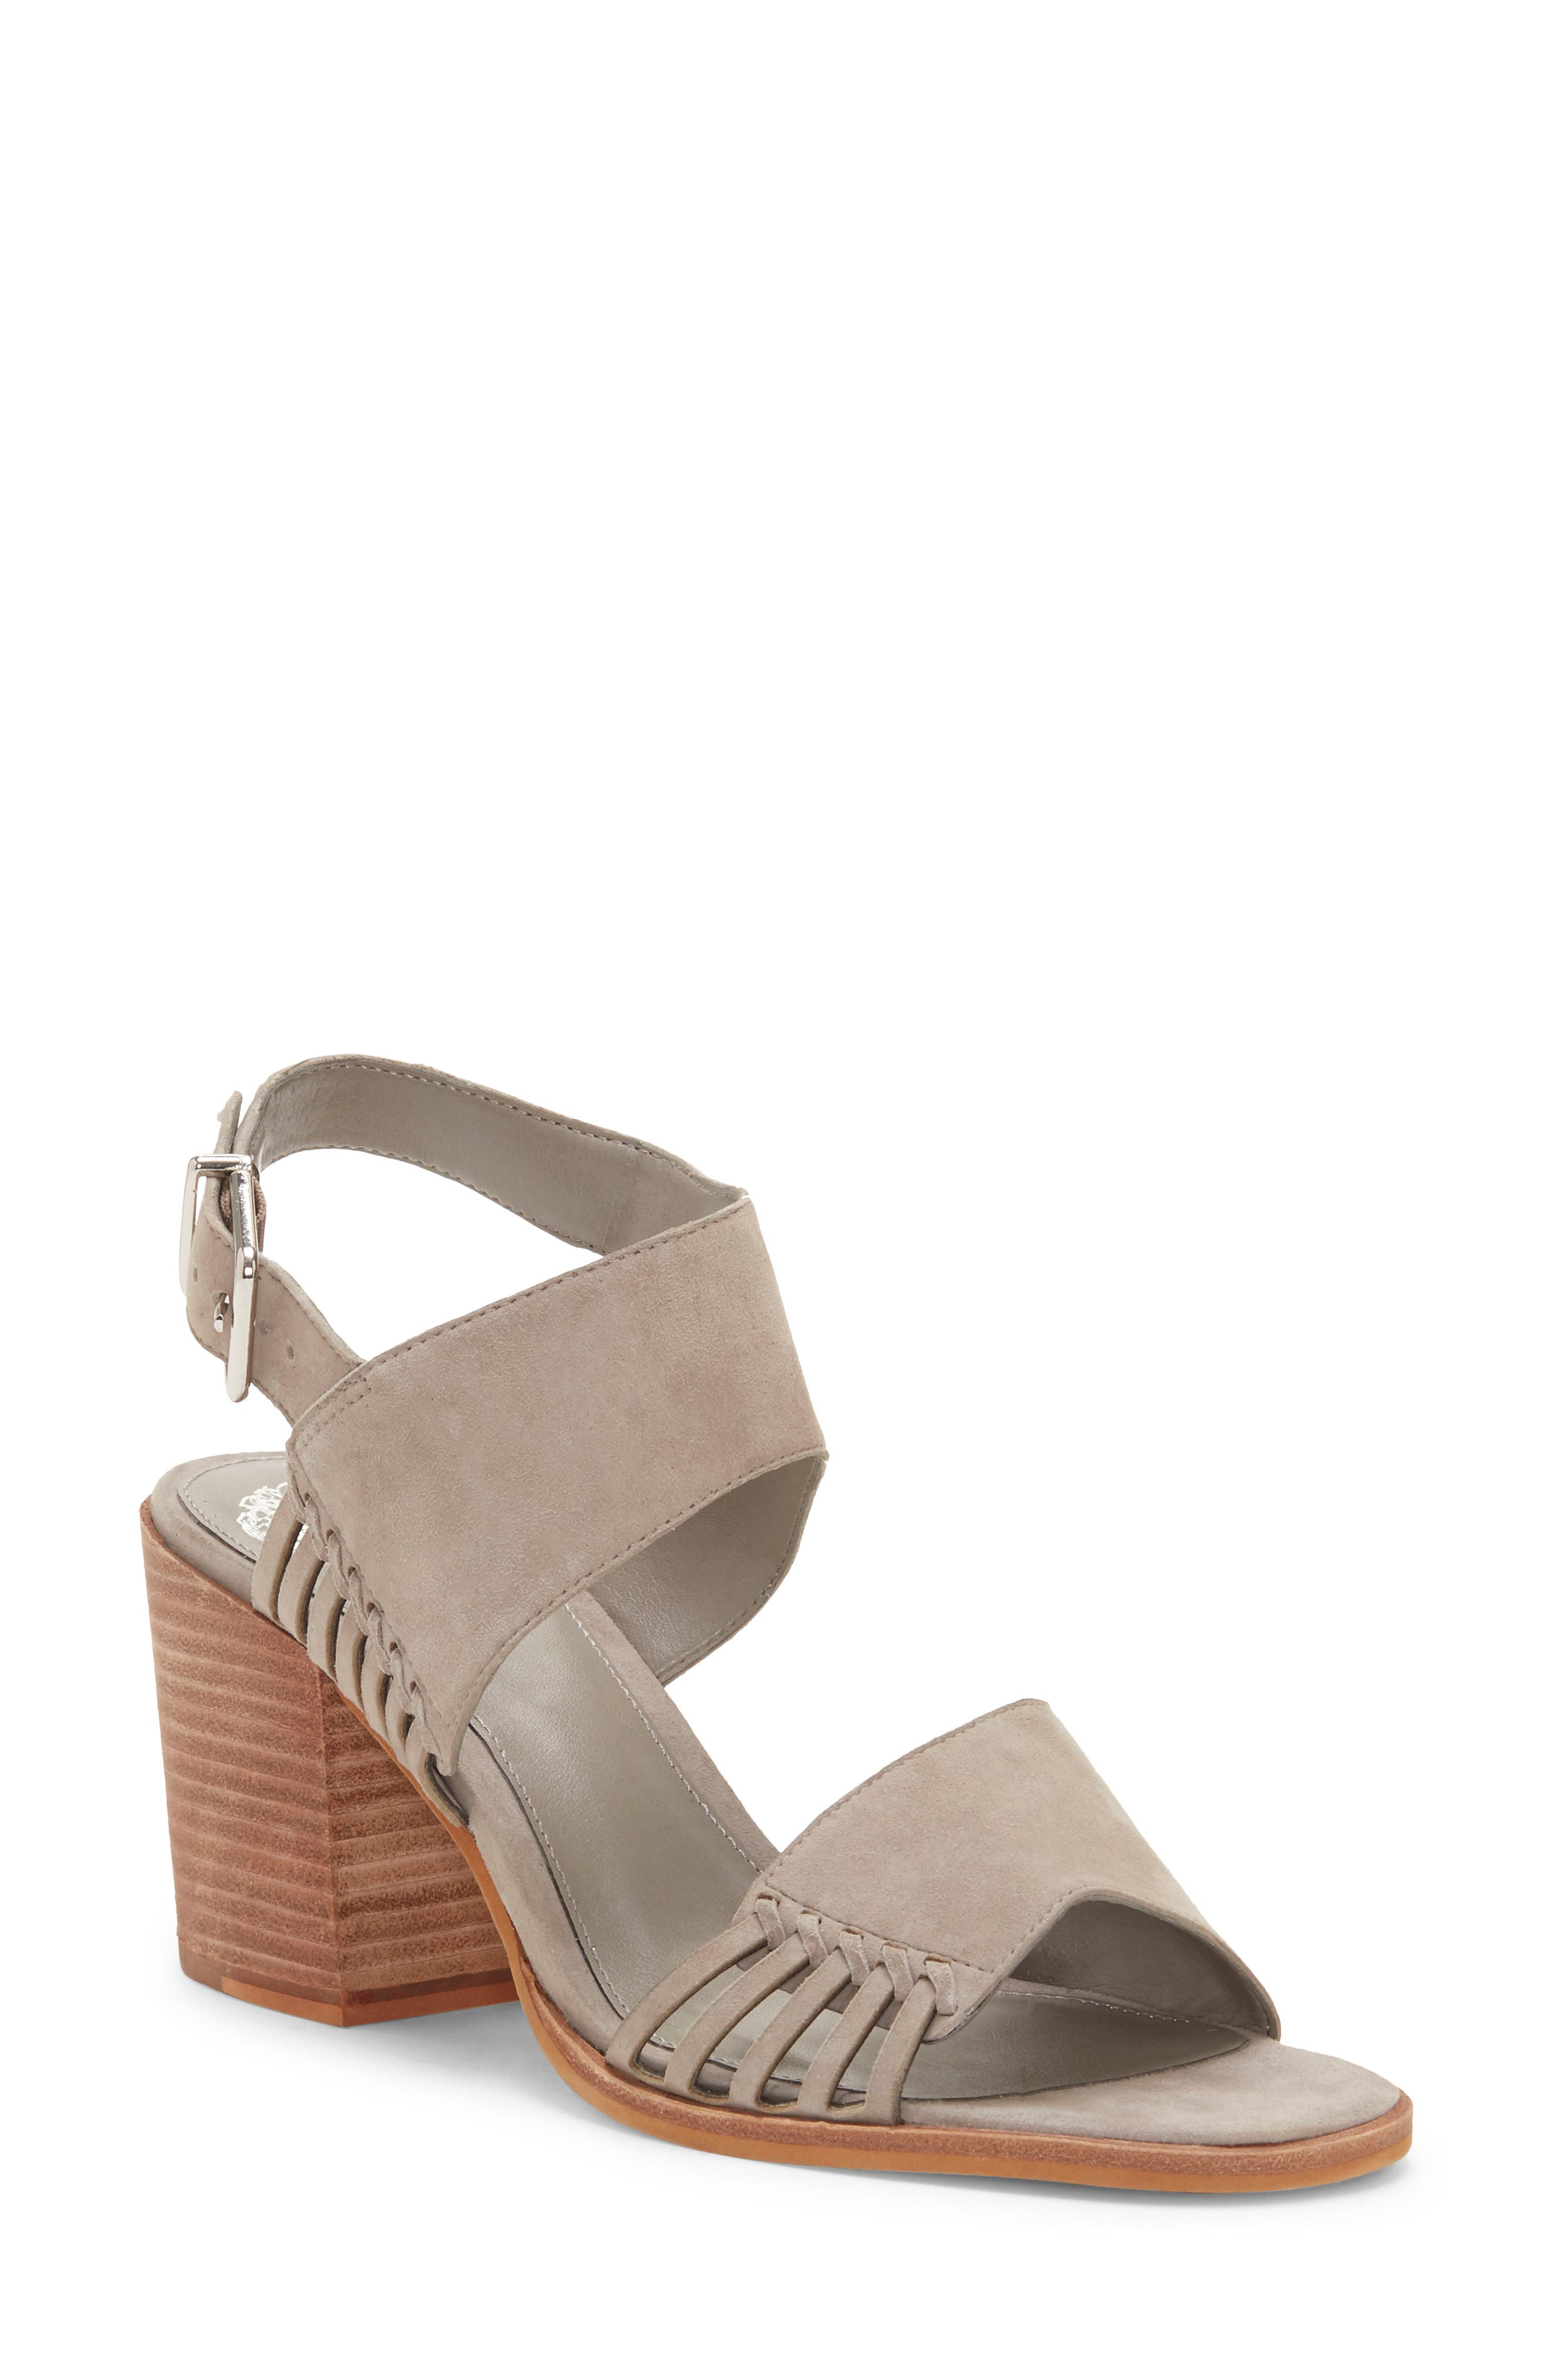 VINCE CAMUTO, Karmelo Slingback Sandal, Main thumbnail 1, color, STORM GREY LEATHER